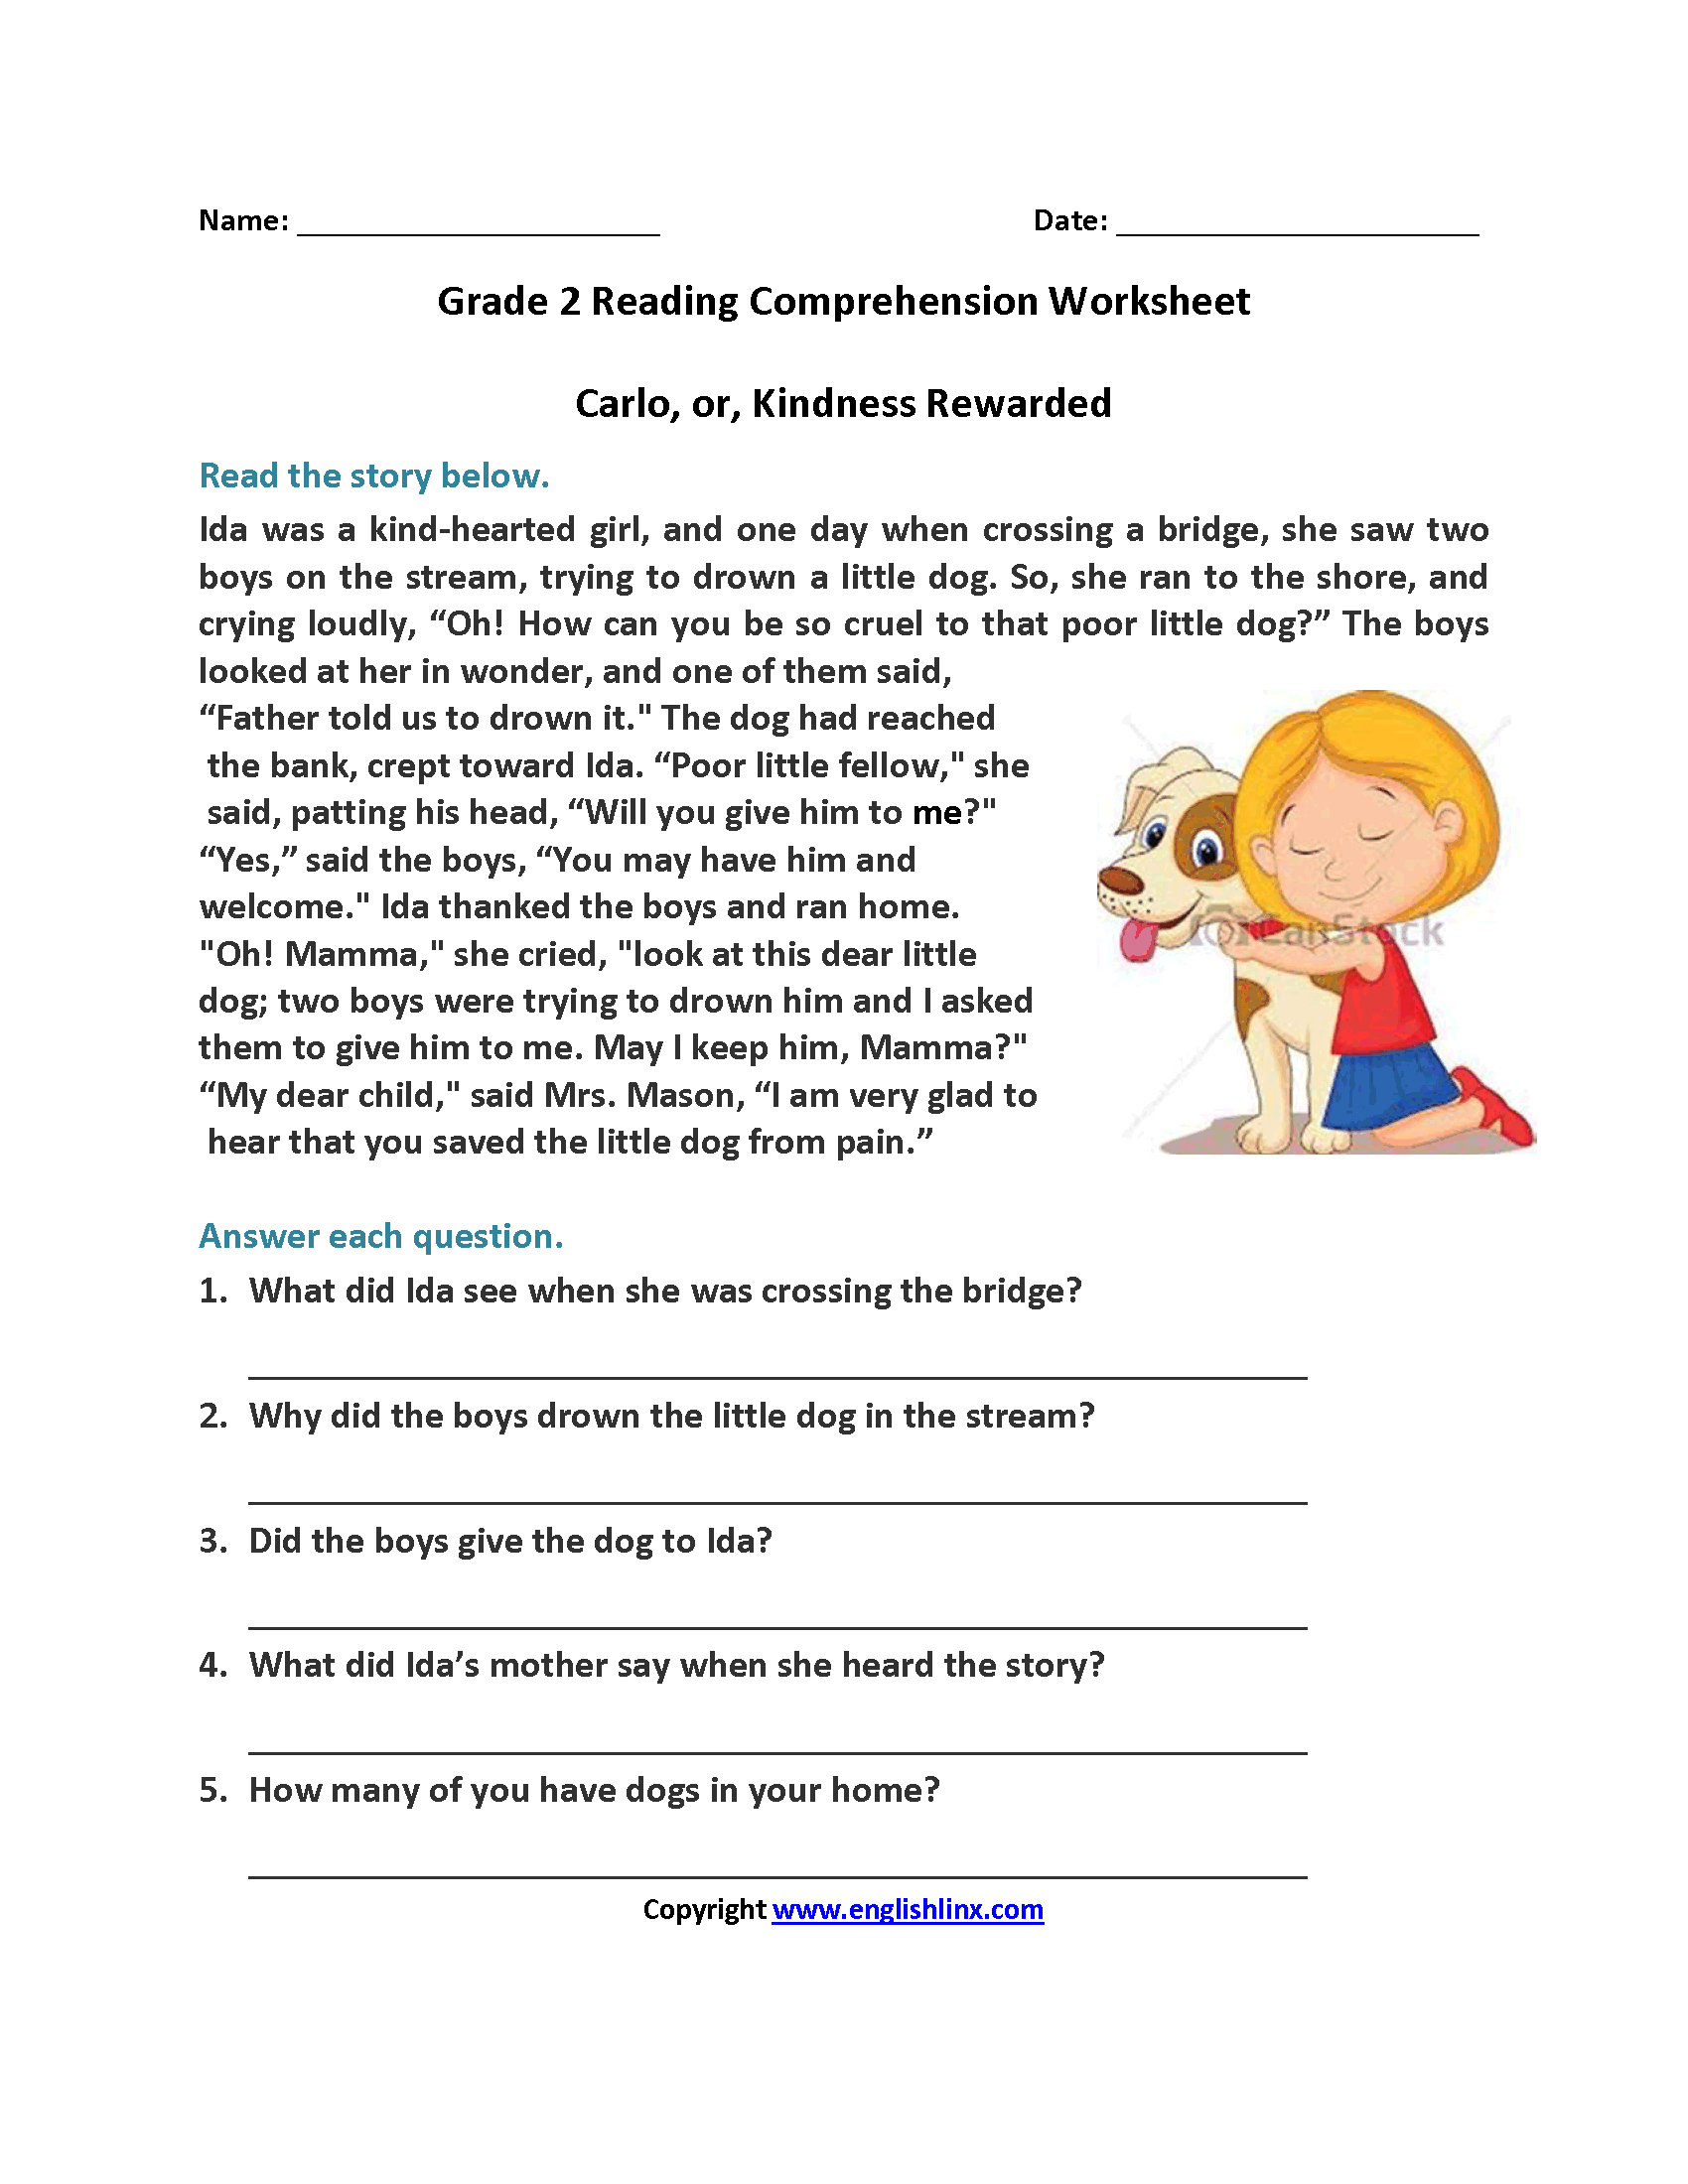 Carlo Or Kindness Rewarded Second Grade Reading Worksheets | Reading | Free Printable Comprehension Worksheets For Grade 5